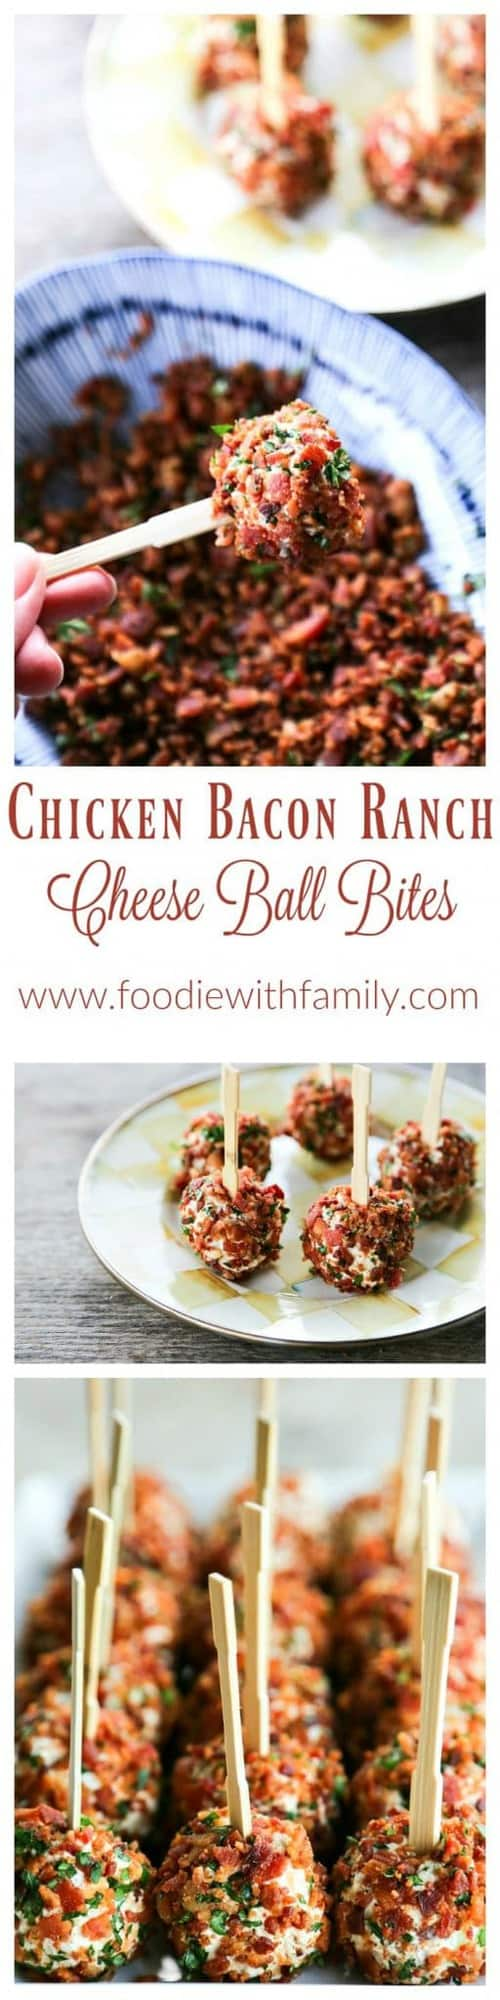 Chicken Bacon Ranch Cheese Ball Bites are the ultimate party food. Two-bite chicken and cheese balls completely crusted in crispy bacon and fresh parsley!